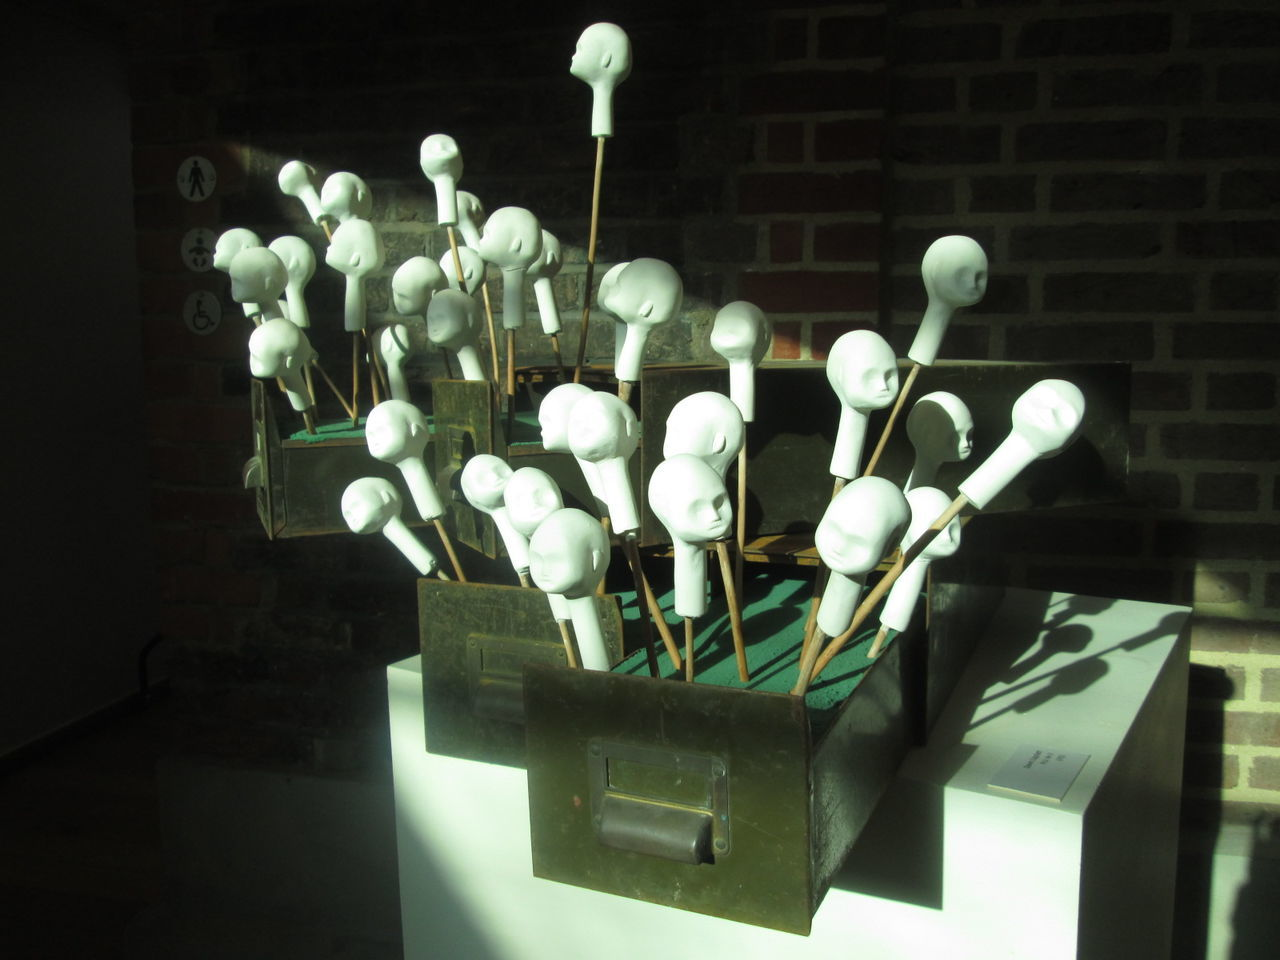 Make someone elses art your art Gallery Hampstead Heath London Modern Modern Art Not Sure Whats Happening Here Skulptur